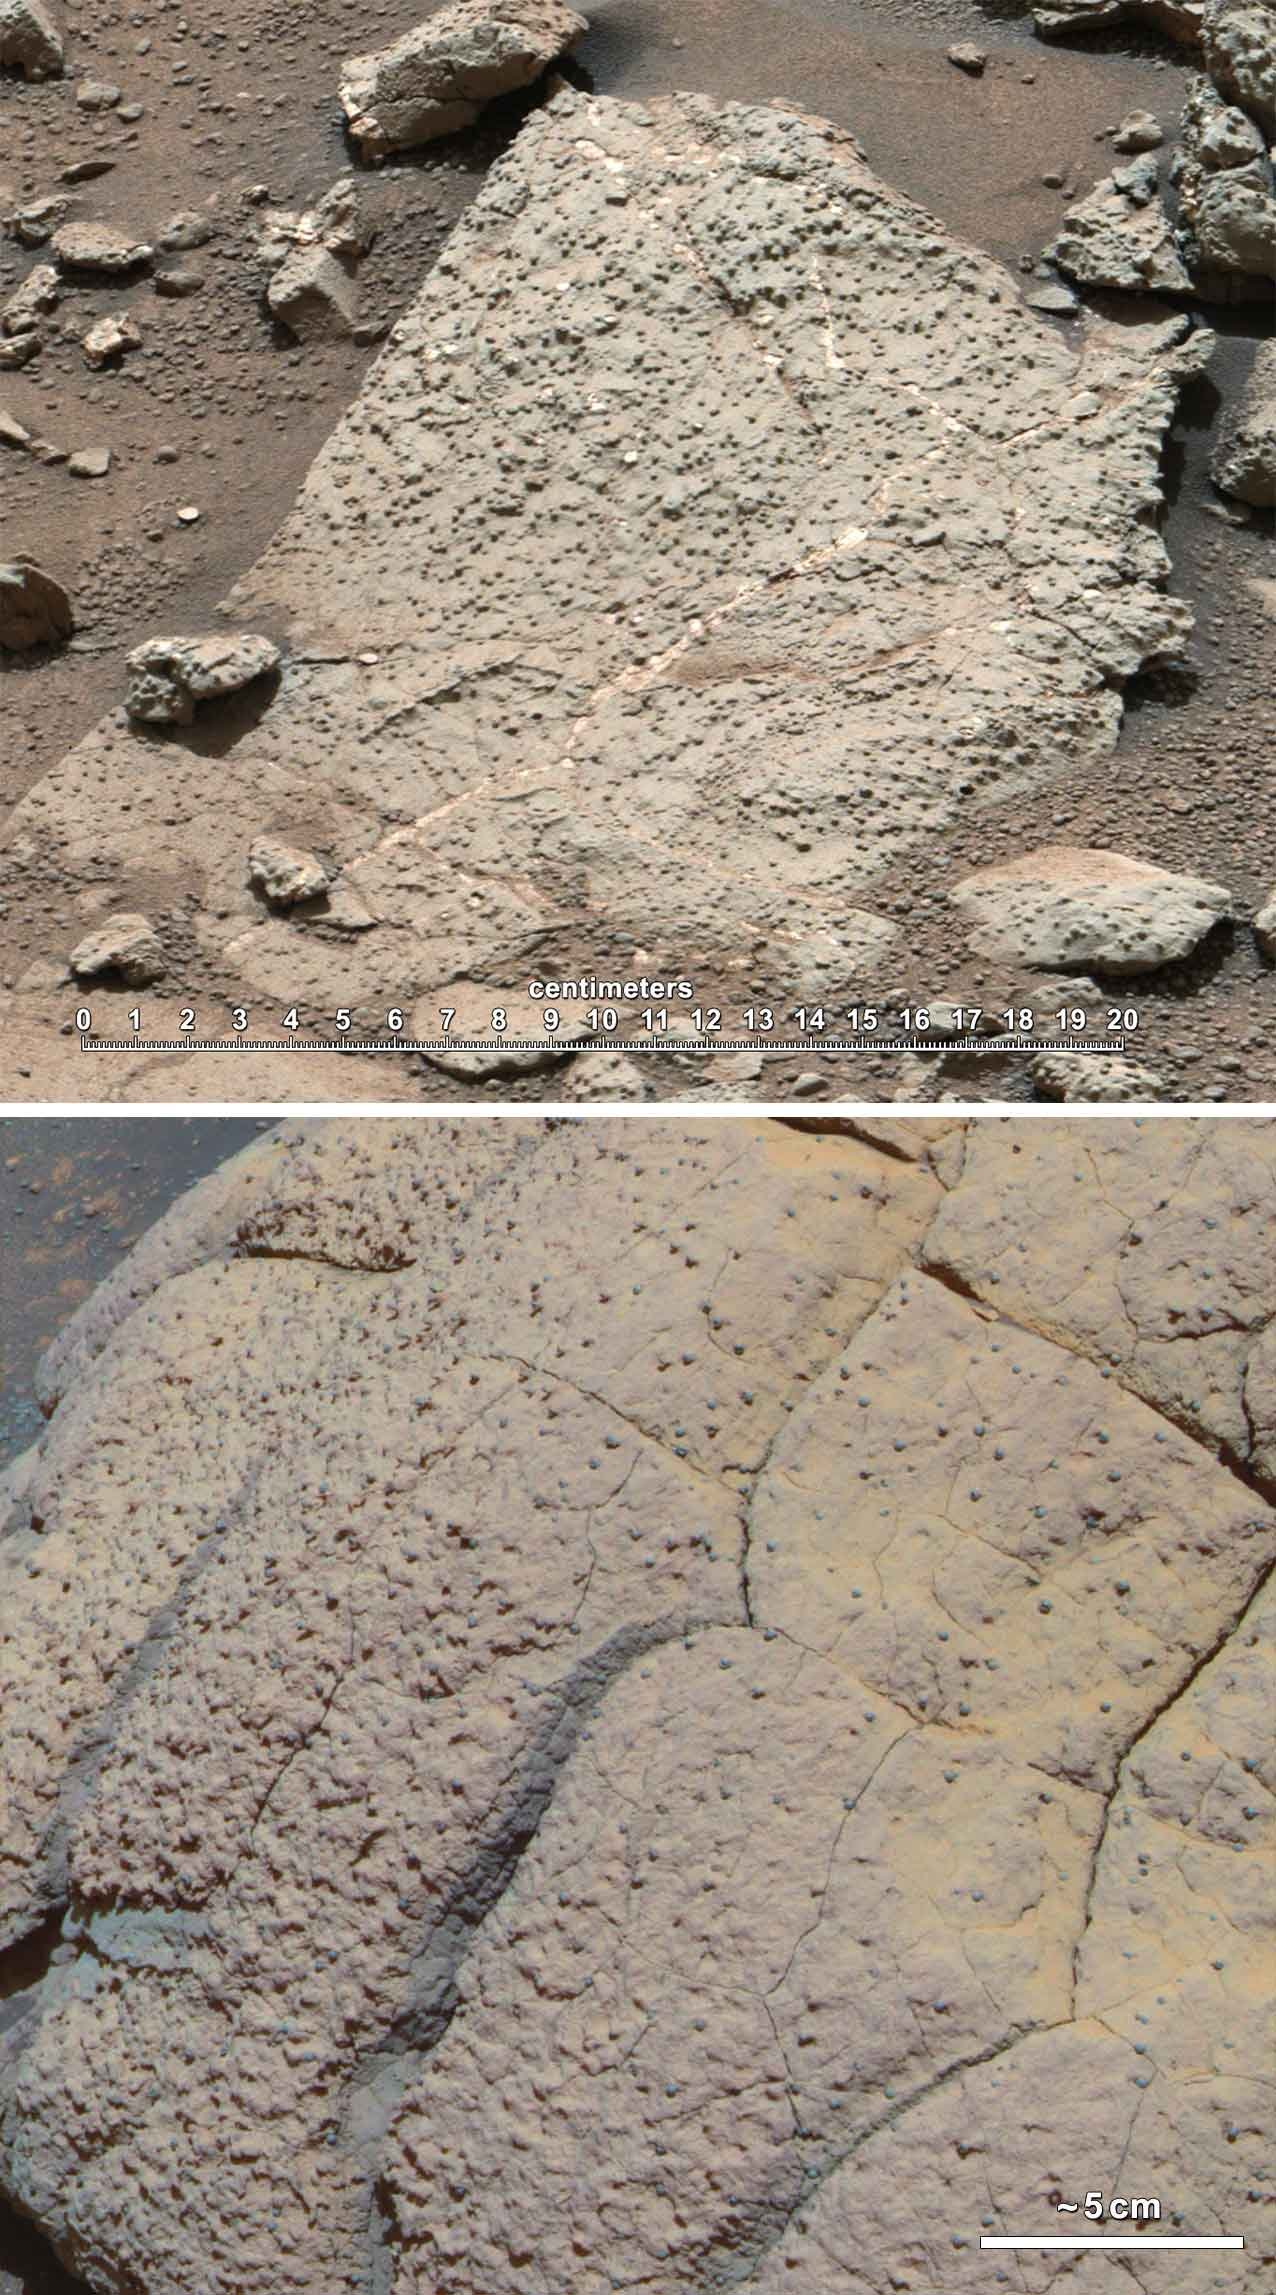 This set of images compares rocks seen by NASA's Opportunity rover and Curiosity rover at two different parts of Mars. (Source: CNN Wire)